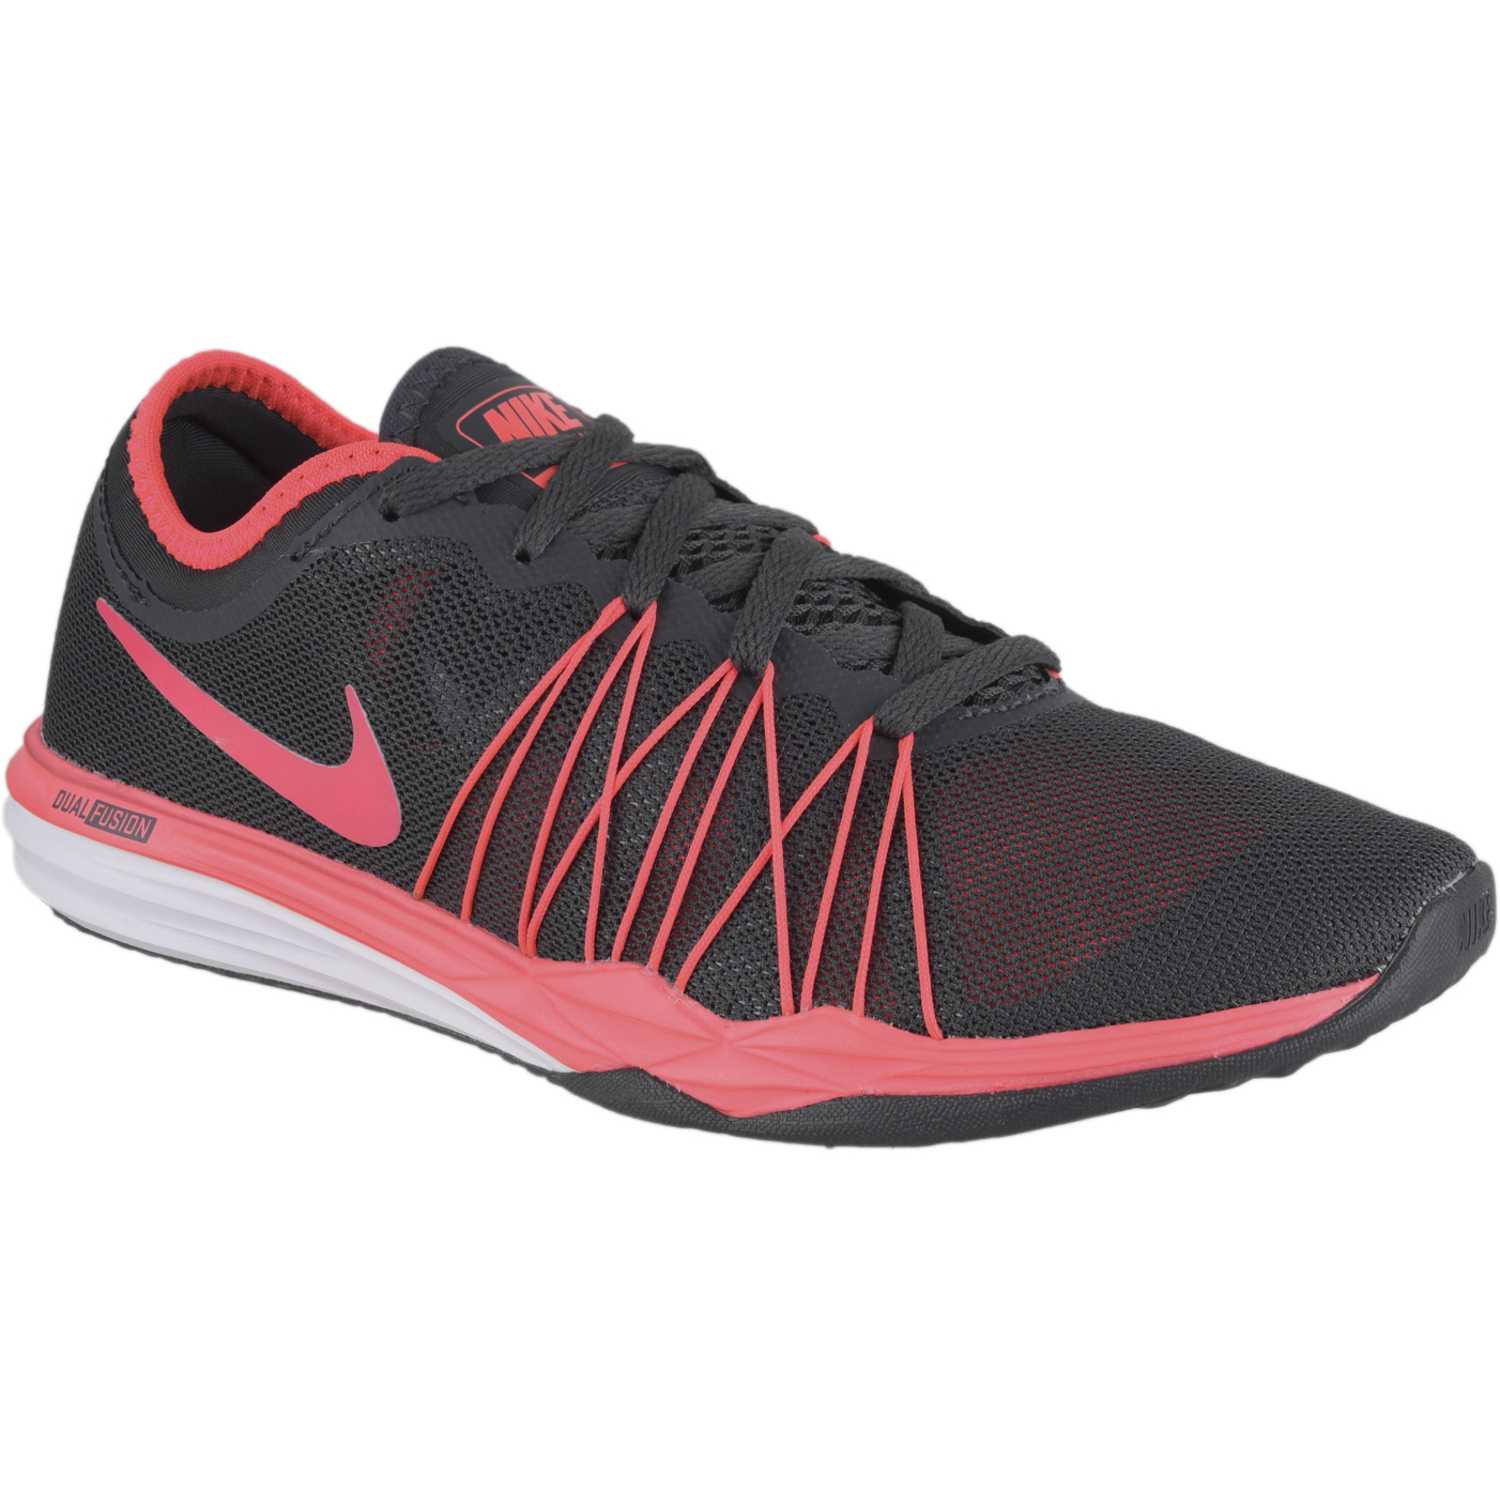 Deportivo de Mujer Nike Negro / coral wmns dual fusion tr hit